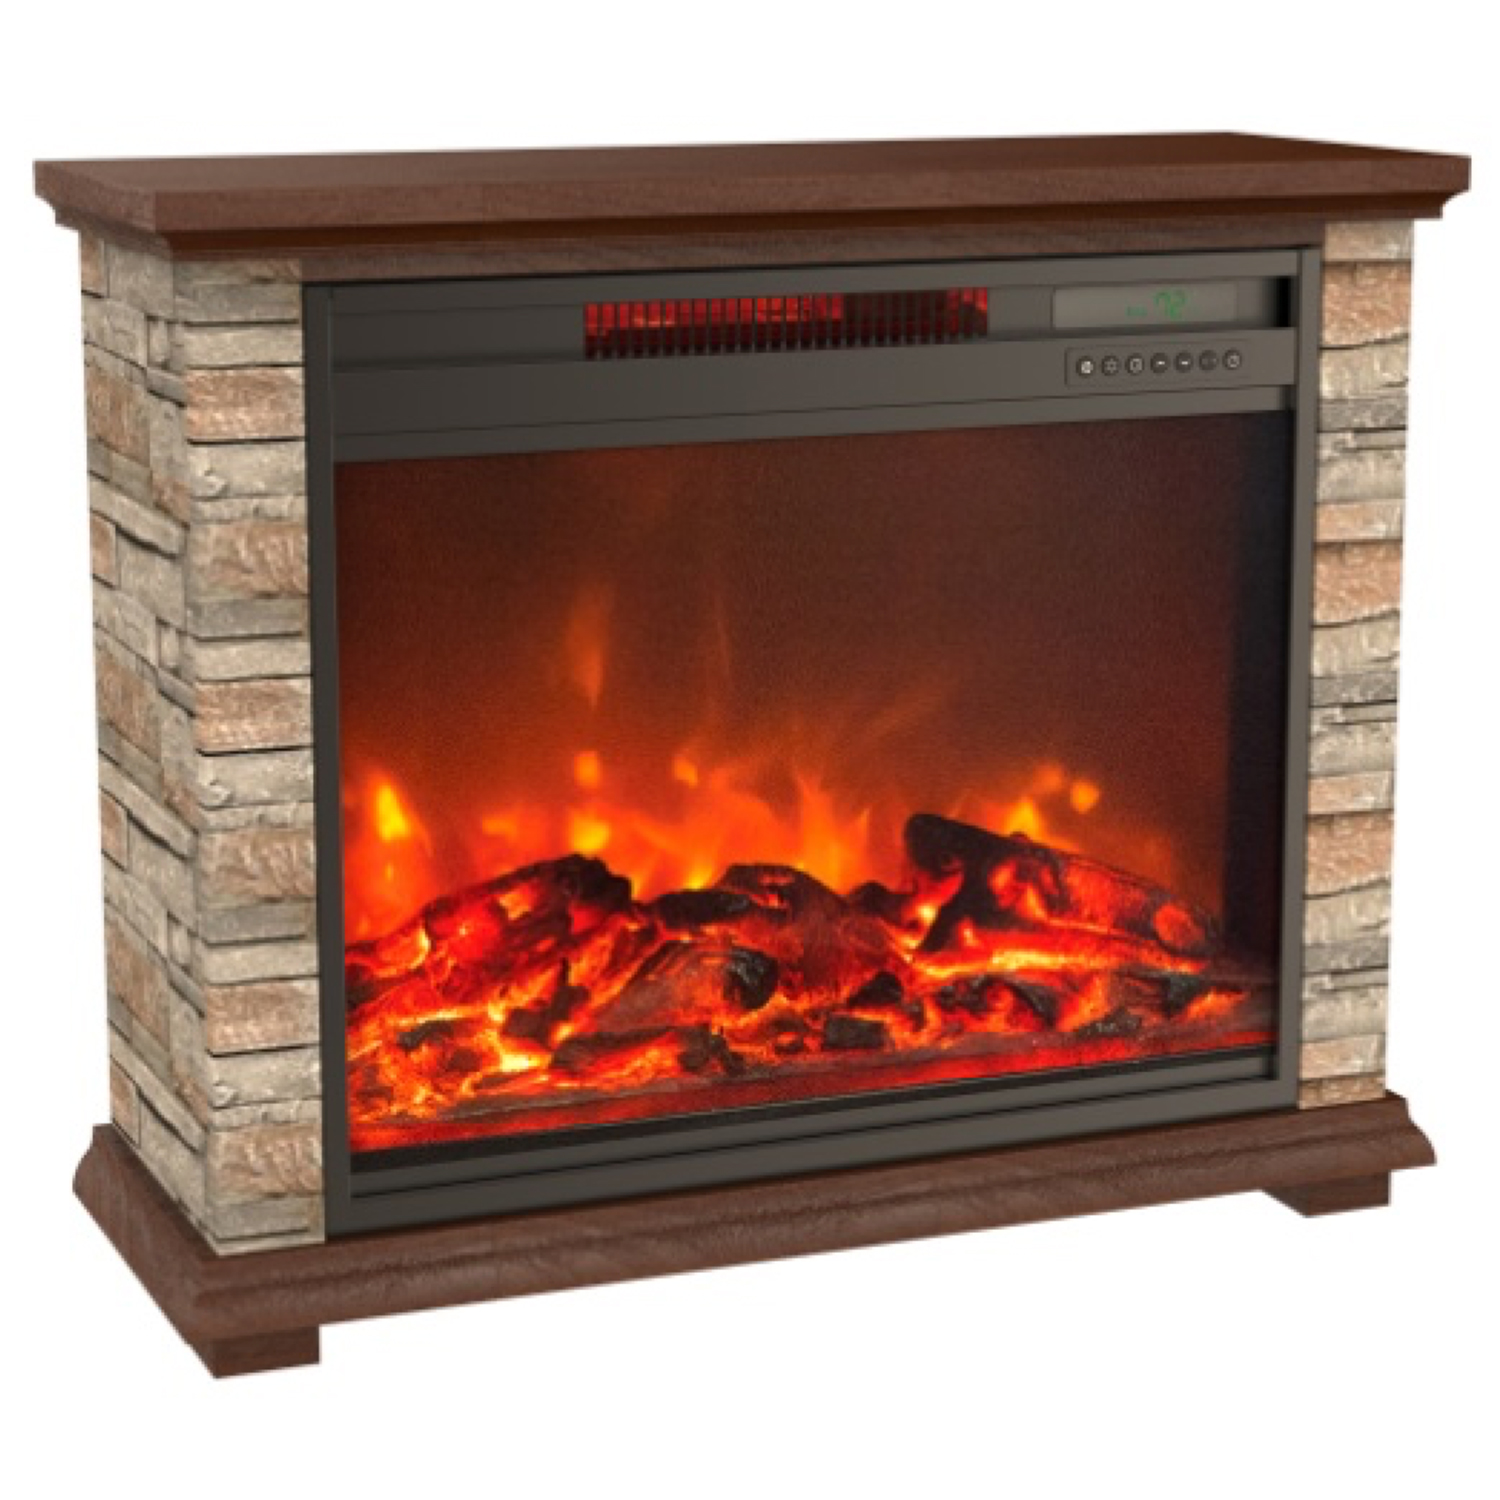 electric fireplaces walmart com rh walmart com